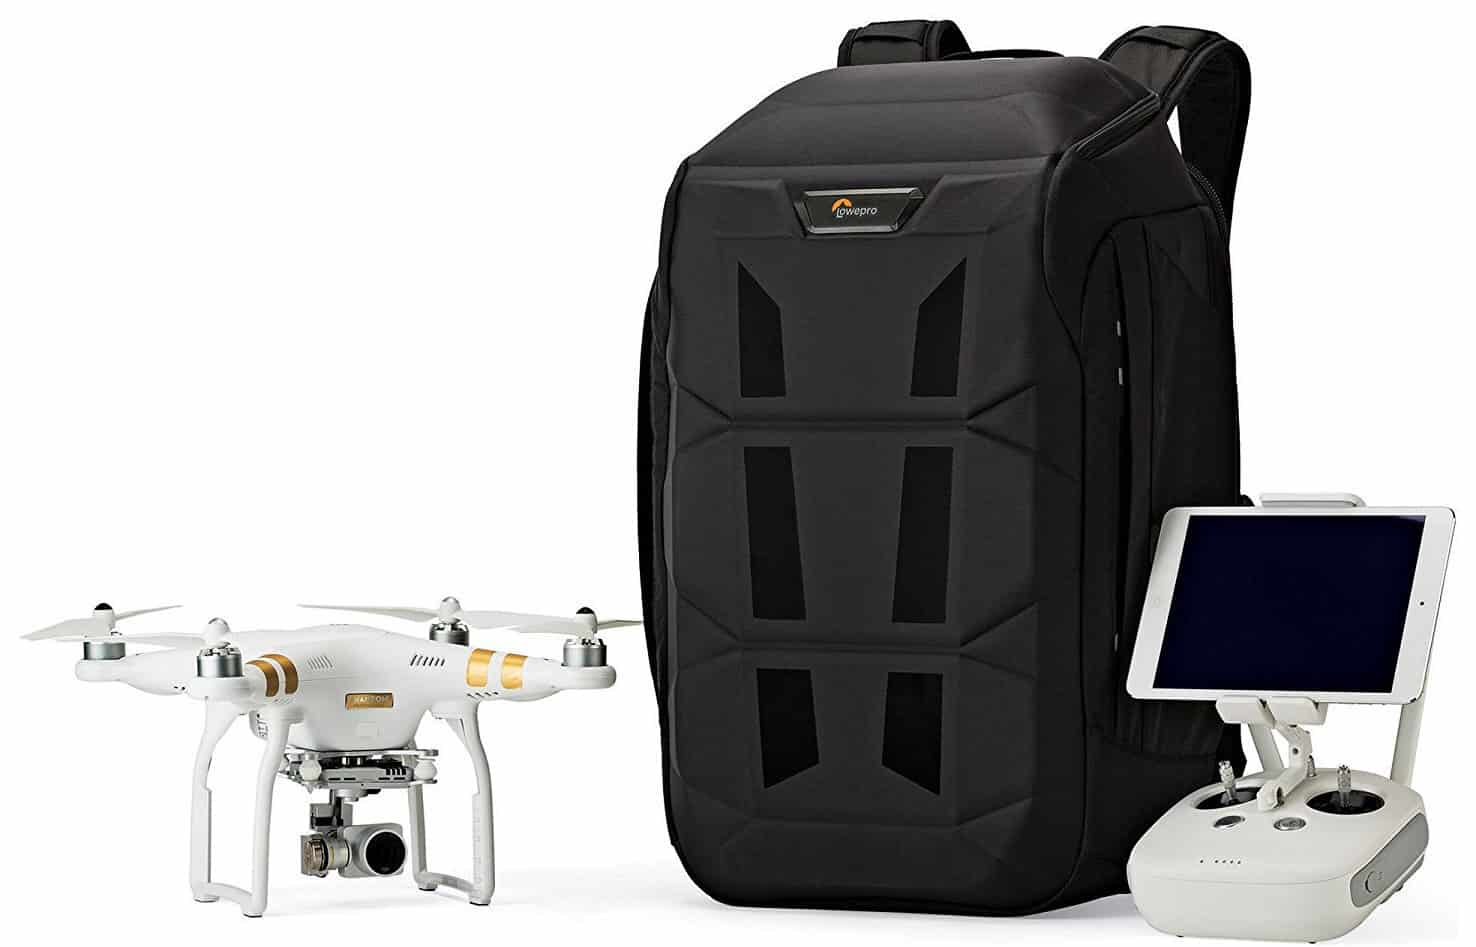 The Lowepro DroneGuard BP 450 Review